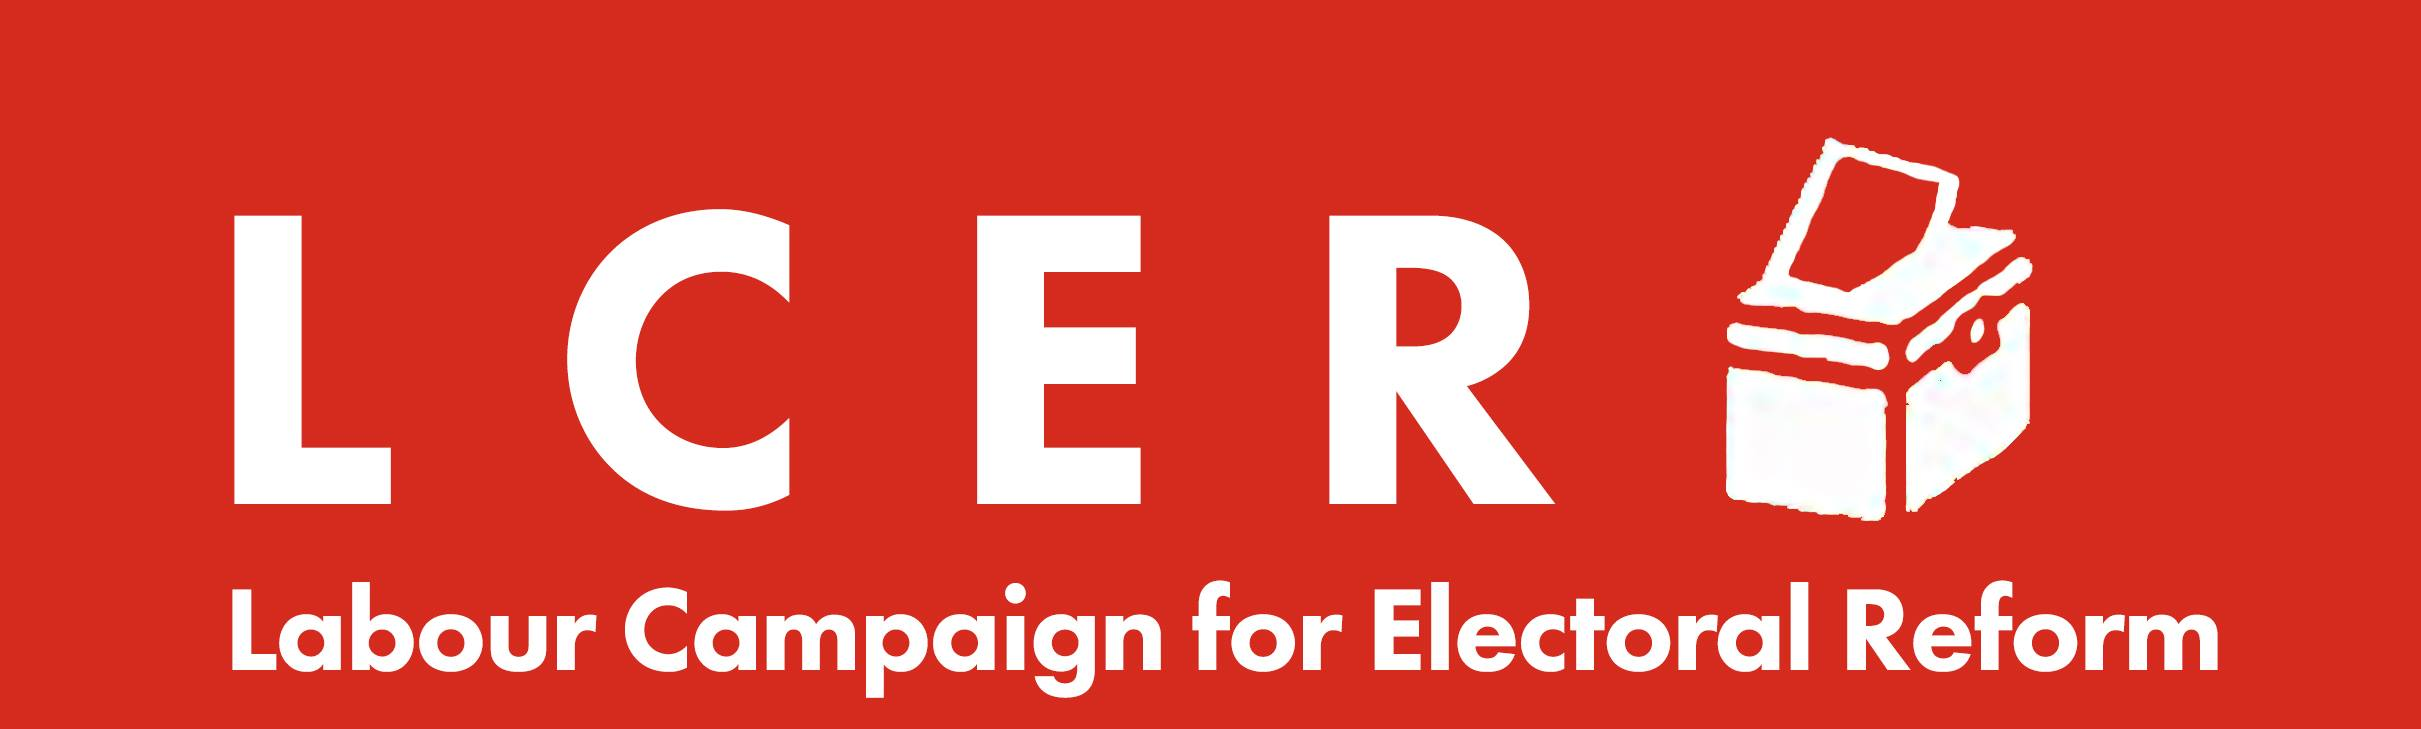 The Labour Campaign for Electoral Reform